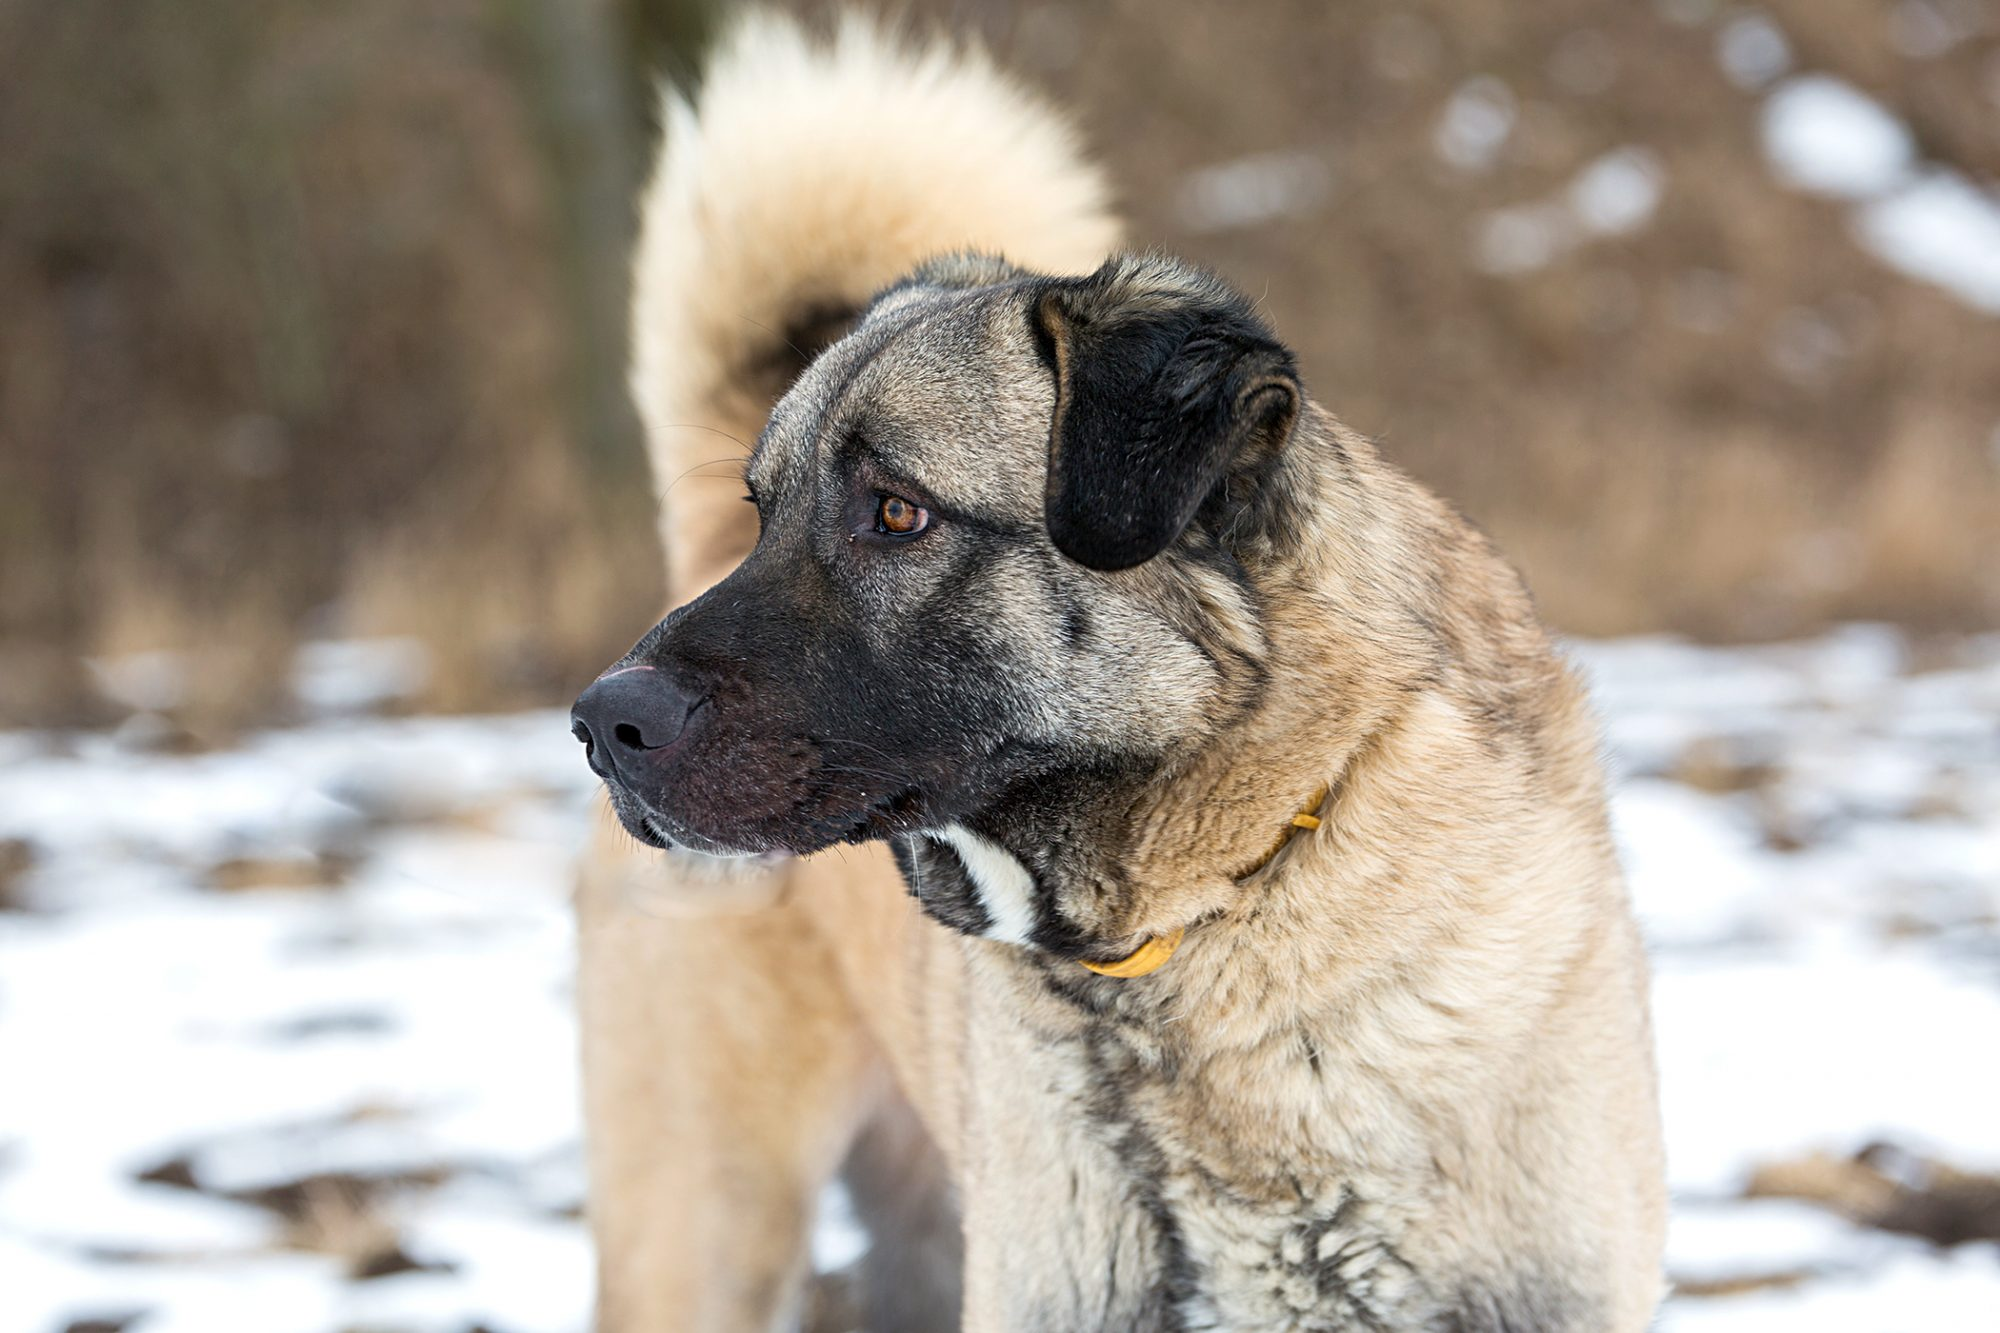 profile of an anatolian shepherd dog with tan fur and a black face standing outside in the snow